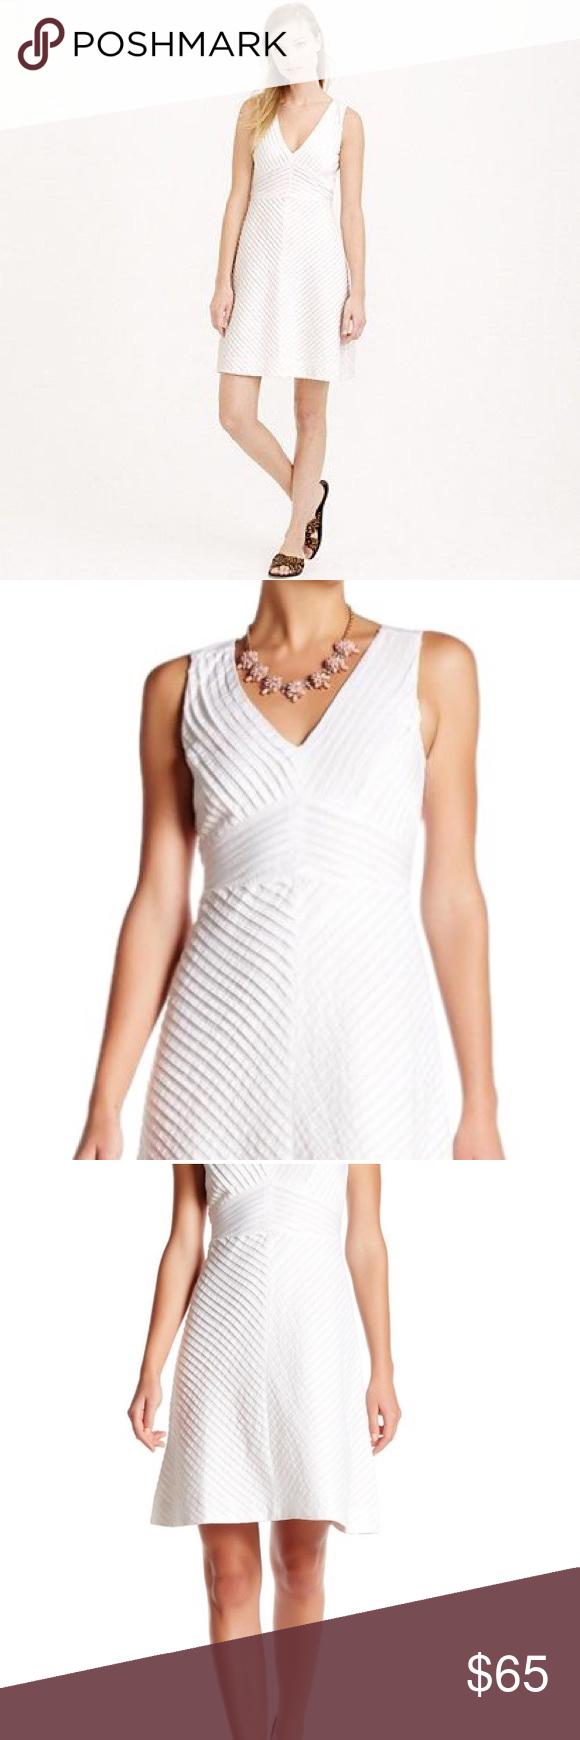 """J. Crew French Seam Dress Gorgeous white dress from J. Crew, French seam pleat construction, light and airy white, fully lined, textured design on back of bodice. 38"""" length perfect for work or play! EUC, no major flaws. J. Crew Dresses"""